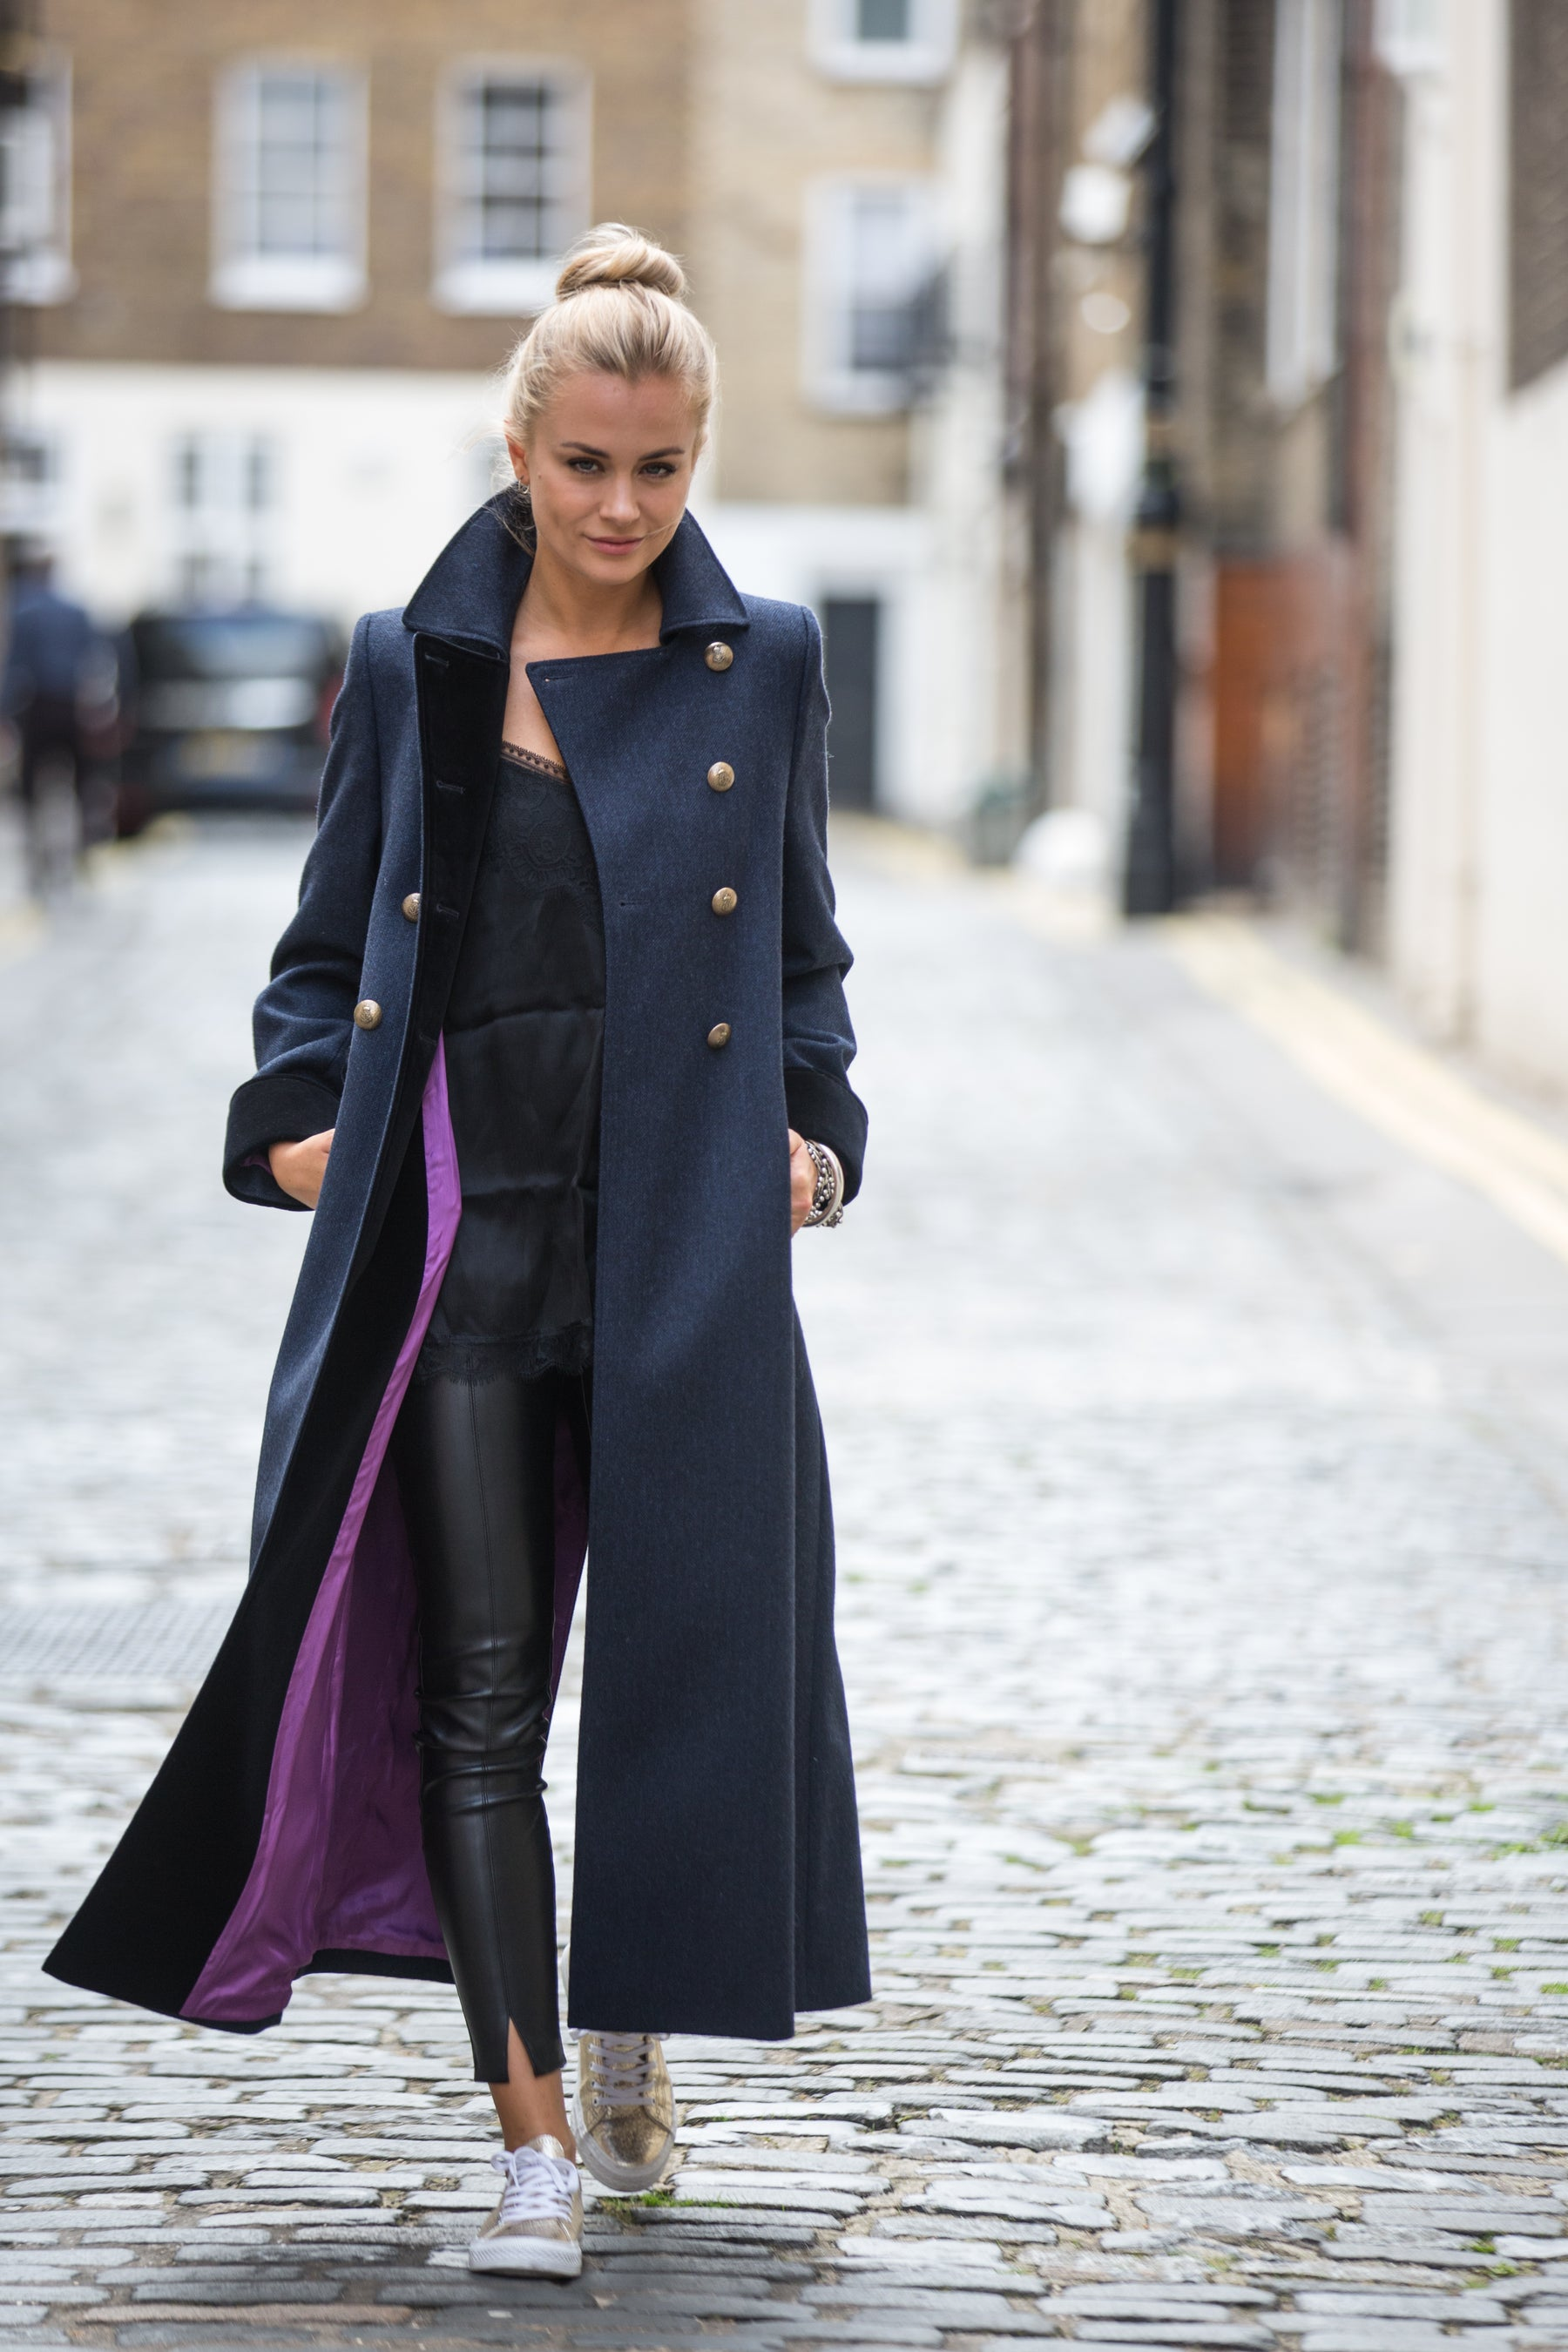 Girl wearing a long navy wool coat in an open and flowing style to reveal the coat's beautiful purple lining.  The pure wool coat has velvet details and military buttons. The coat is paired with leather jeans and gold trainers.